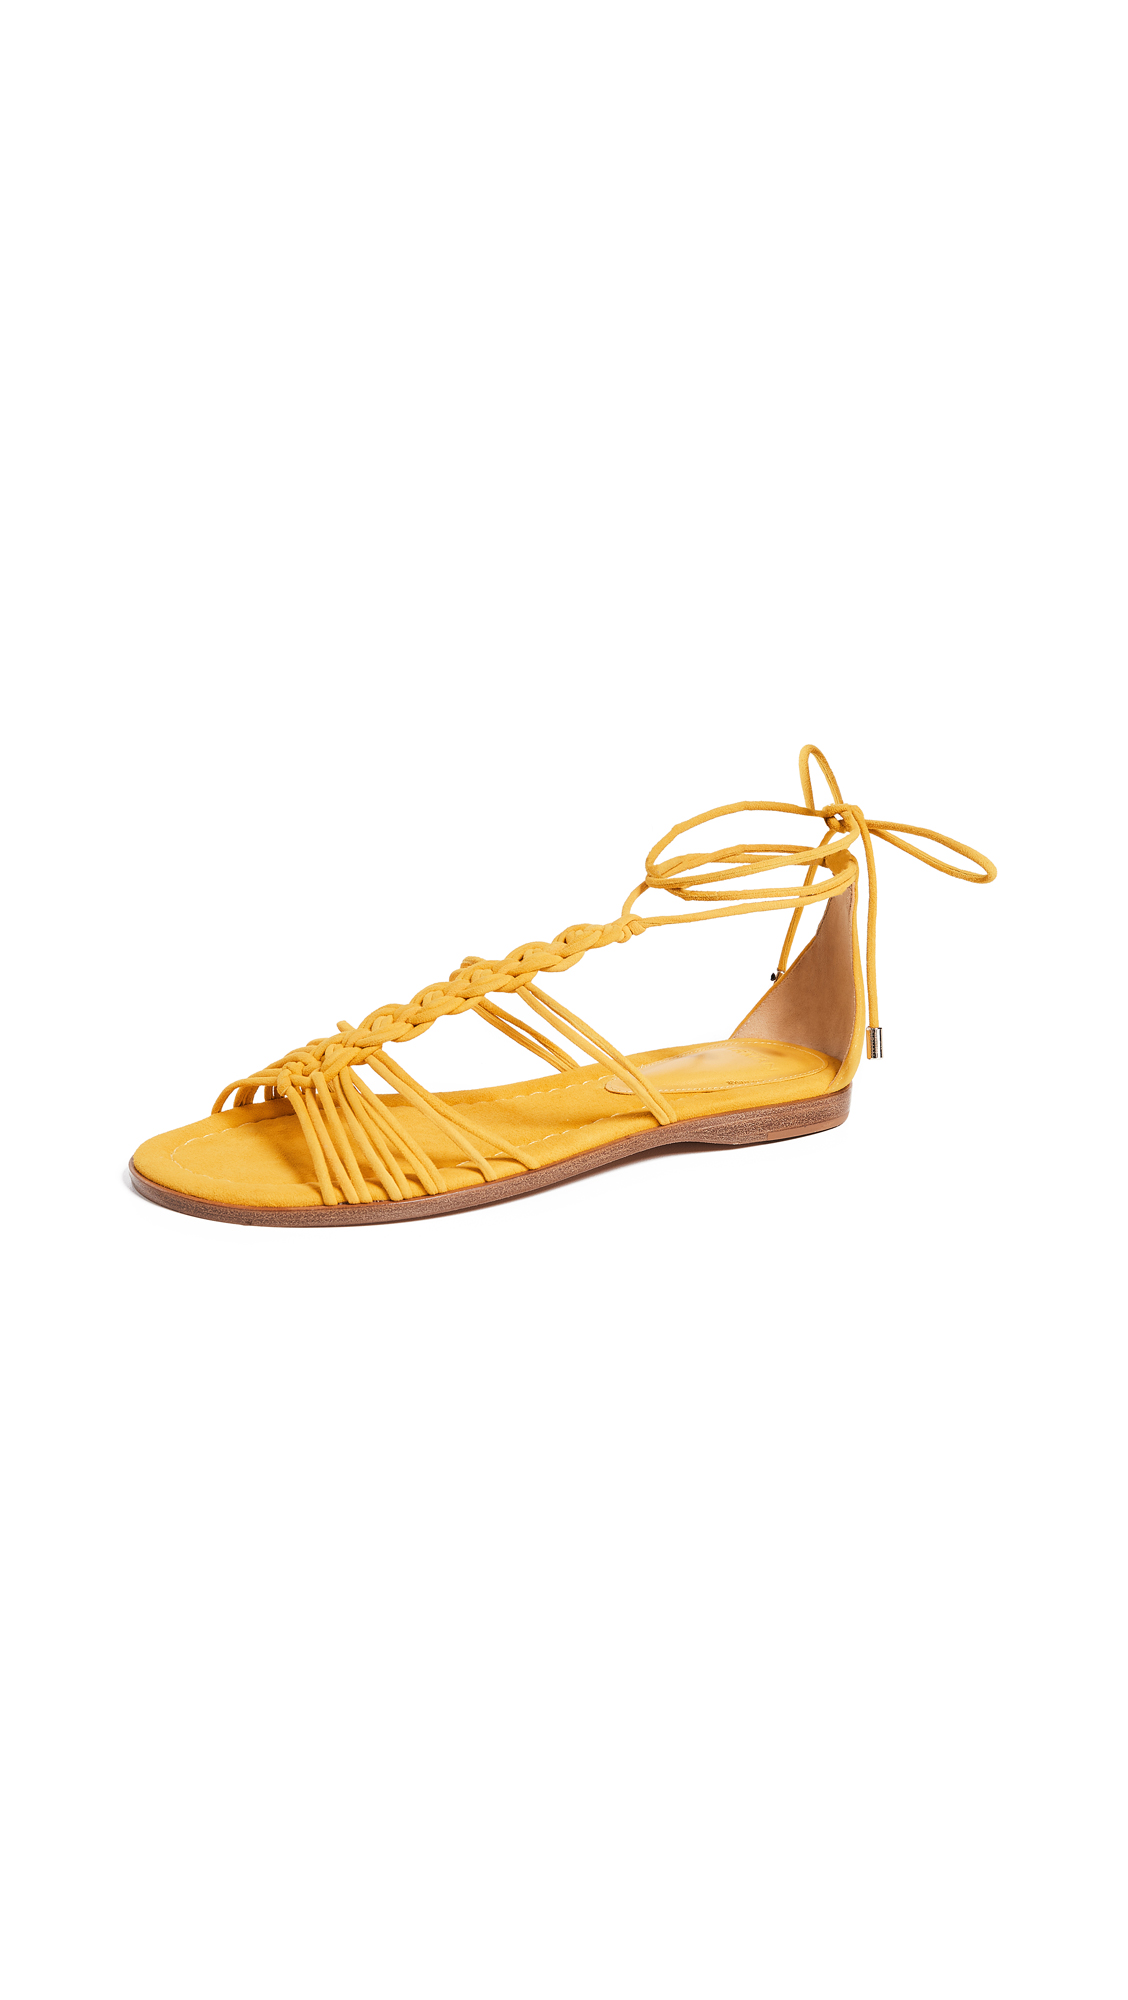 Alexandre Birman Roly Flat Sandals - Pineapple